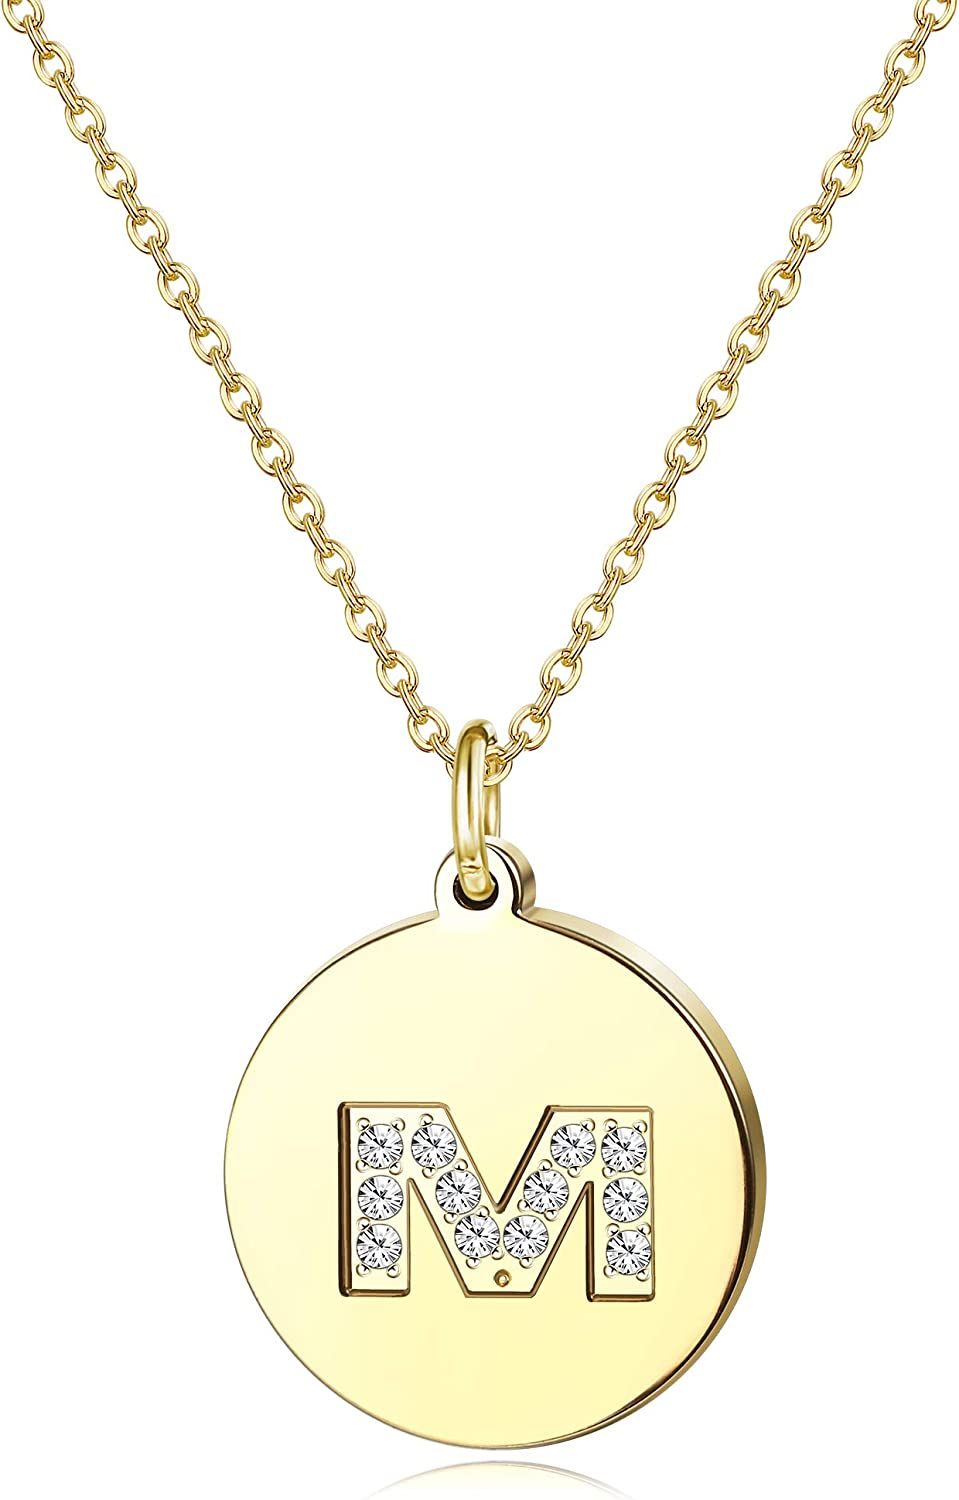 Jewenova Tiny Initial Letter Necklace for 2021new shipping free shipping Latest item Gold 18K P Girls Women